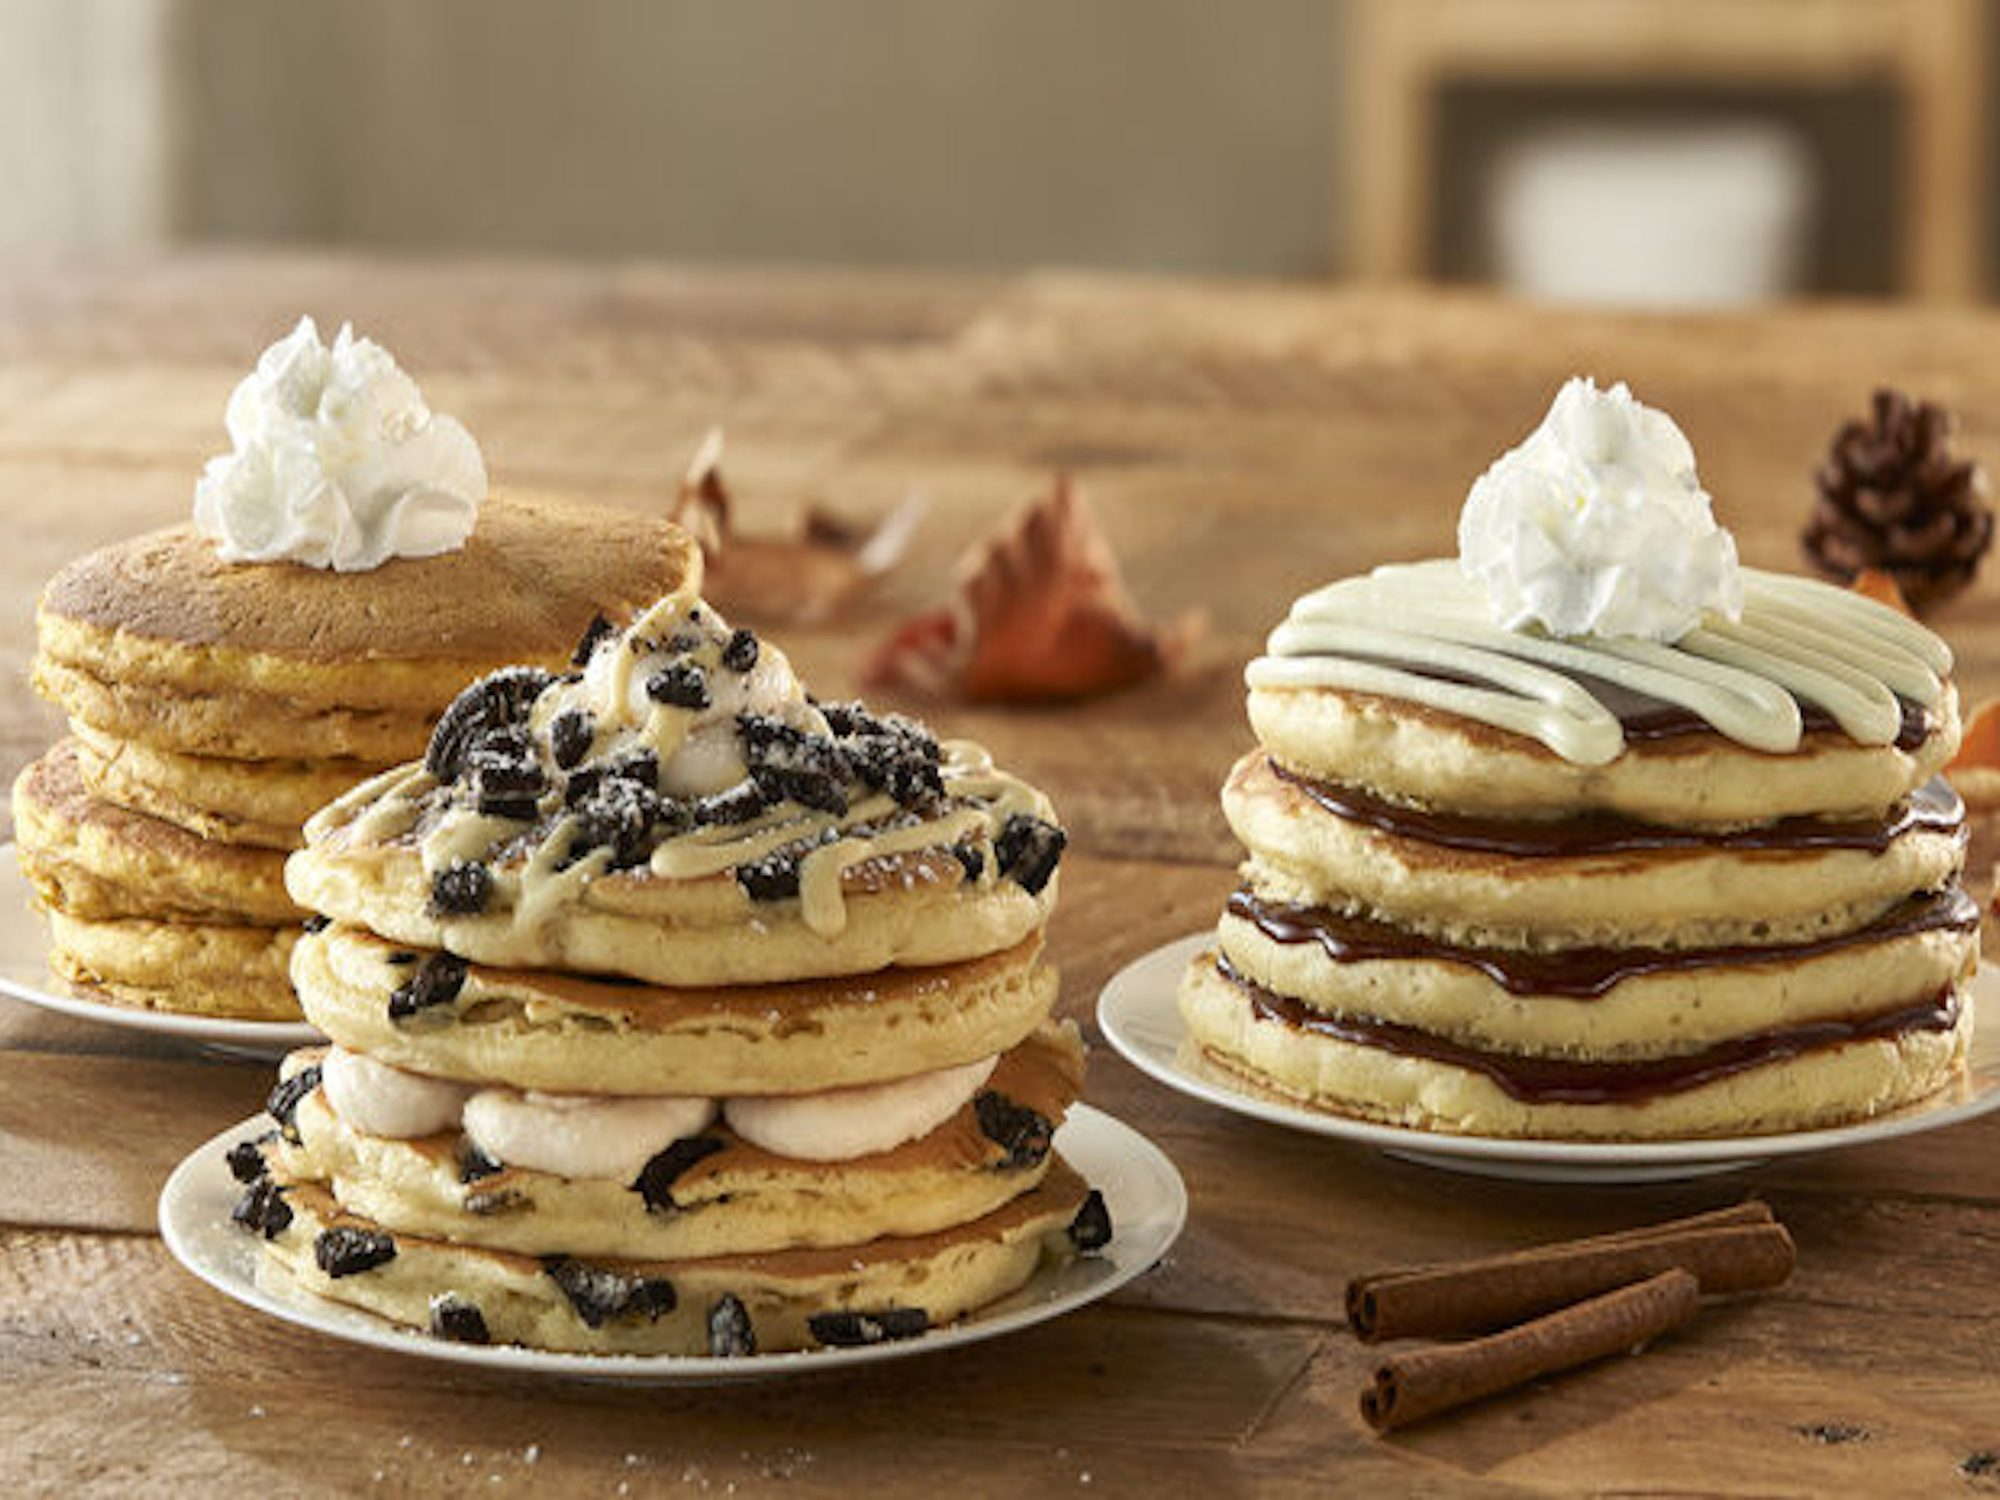 IHOP-Debuts-New-Milk-'n'-Cookies-Pancakes-As-Part-Of-New-Fall-2020-Seasonal-Menu-678x381.jpg